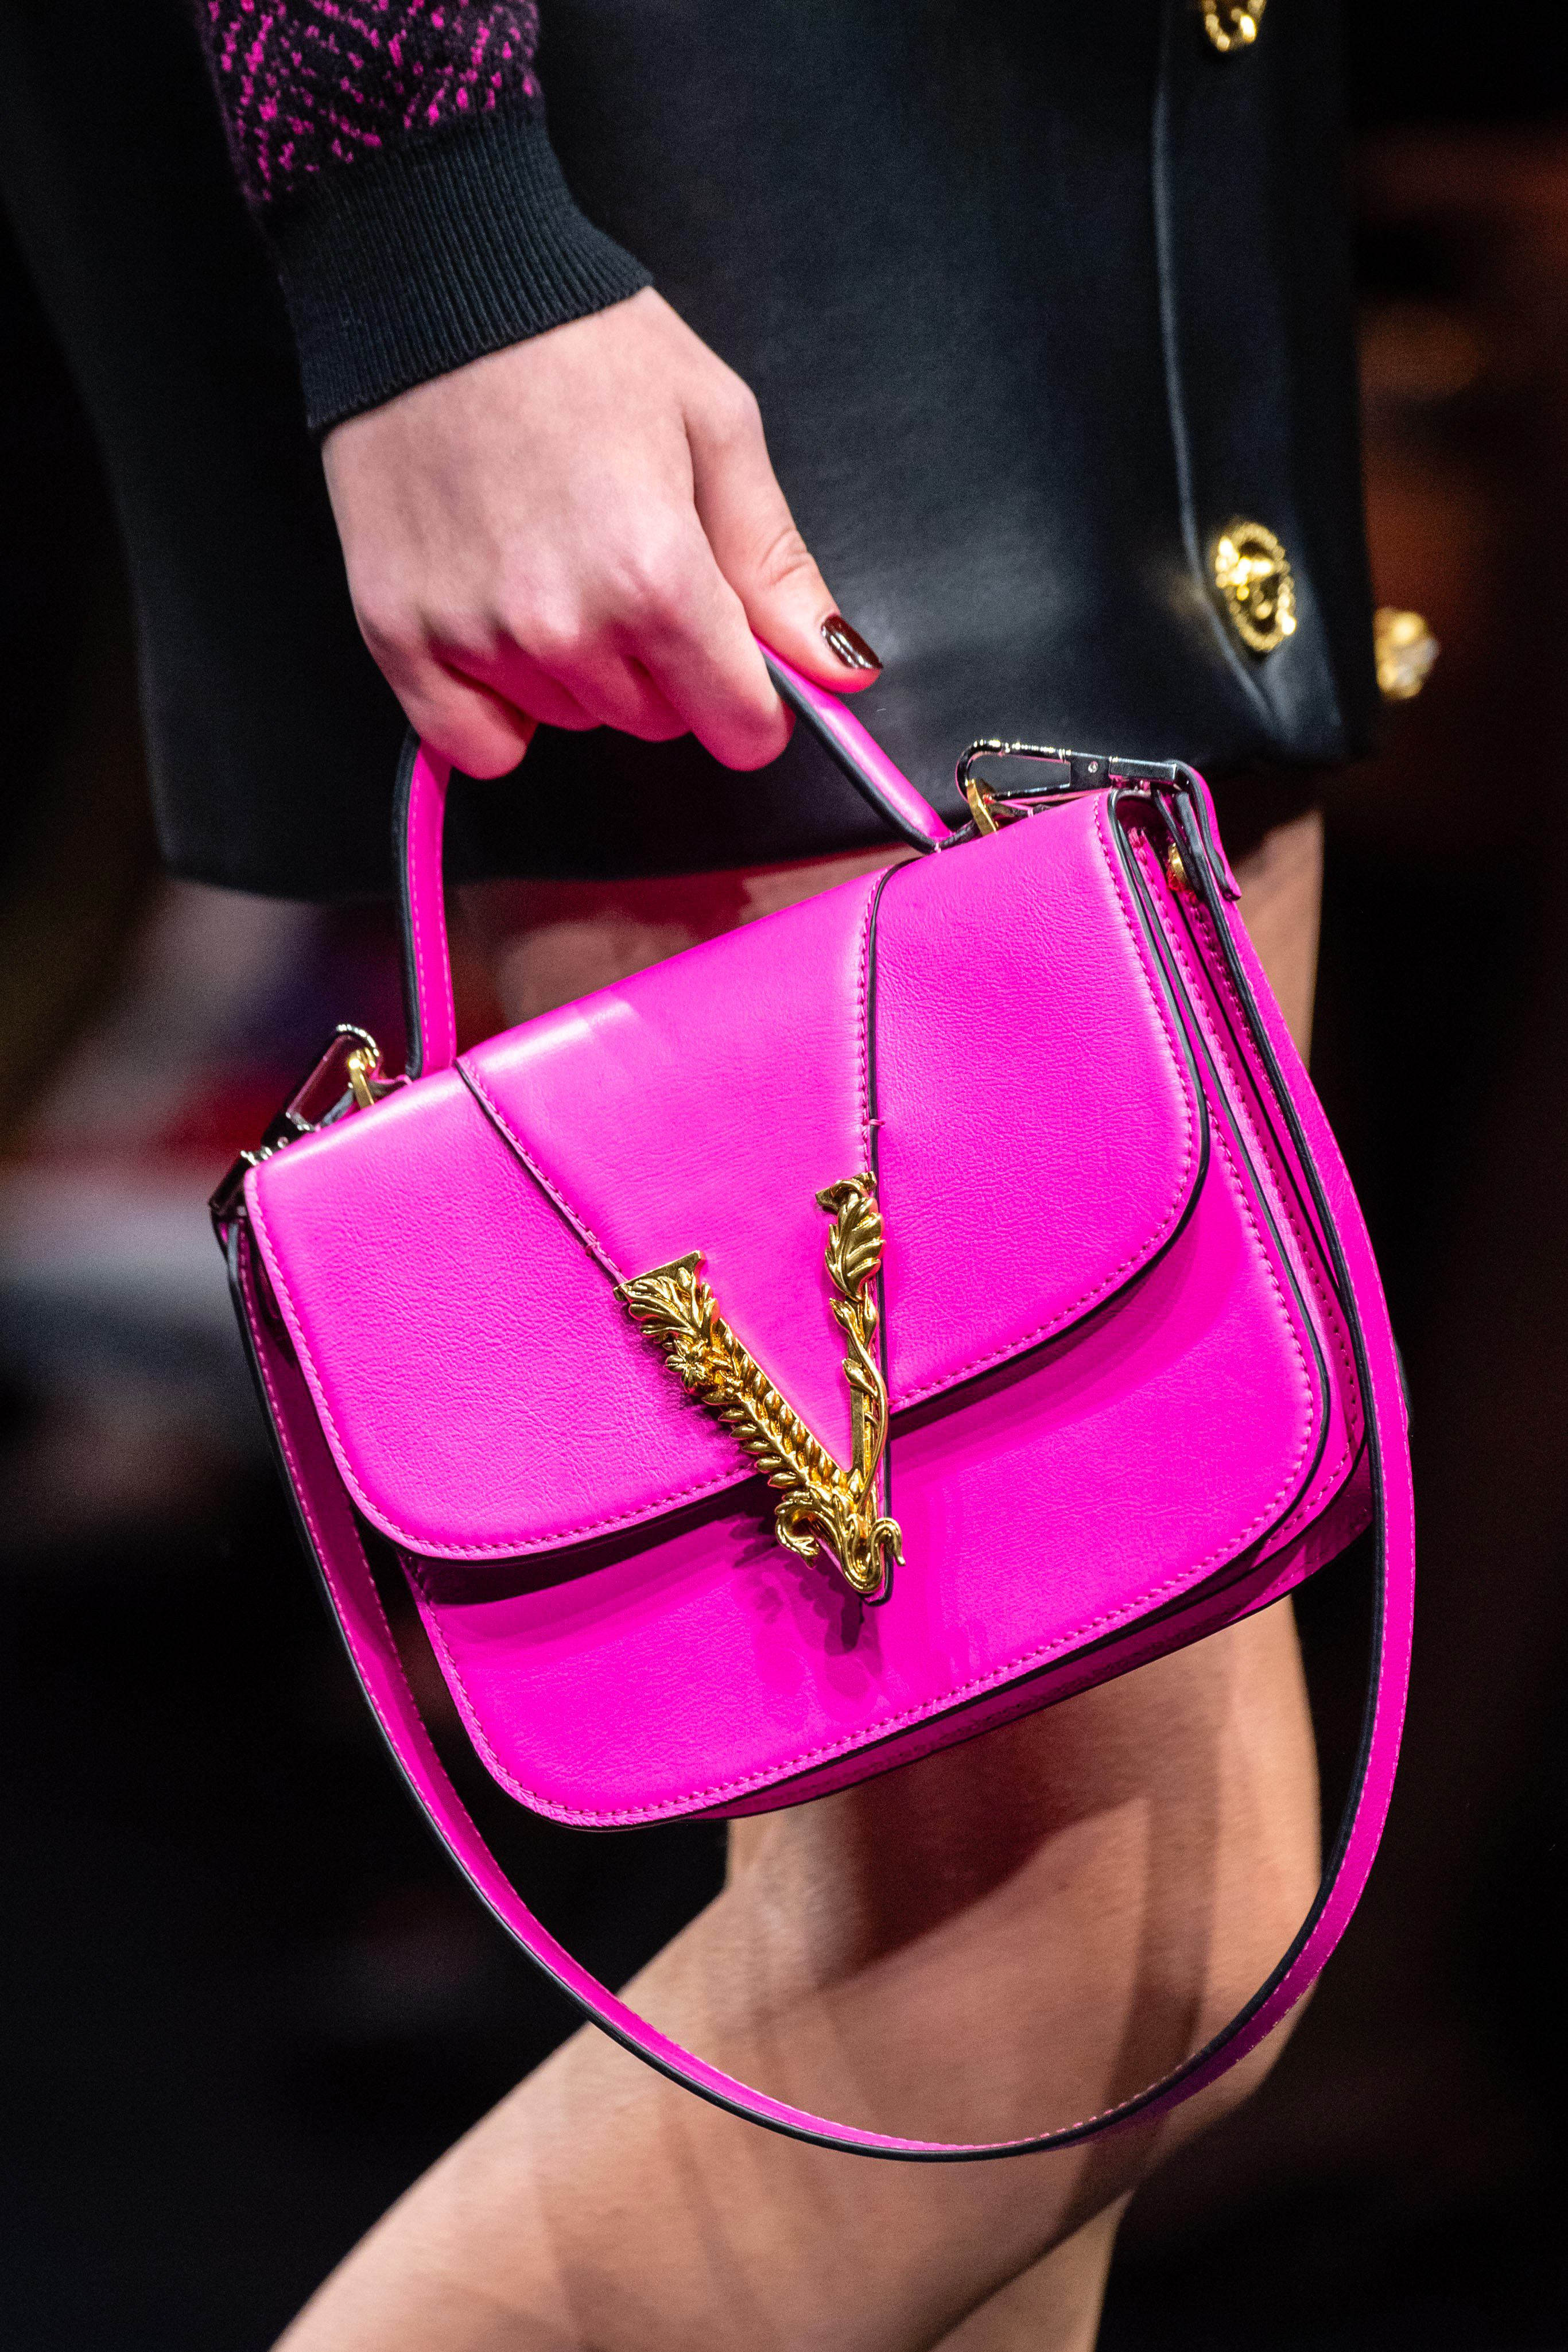 Versace fuchsia mini bag from the Fall 2019 Runway Collection